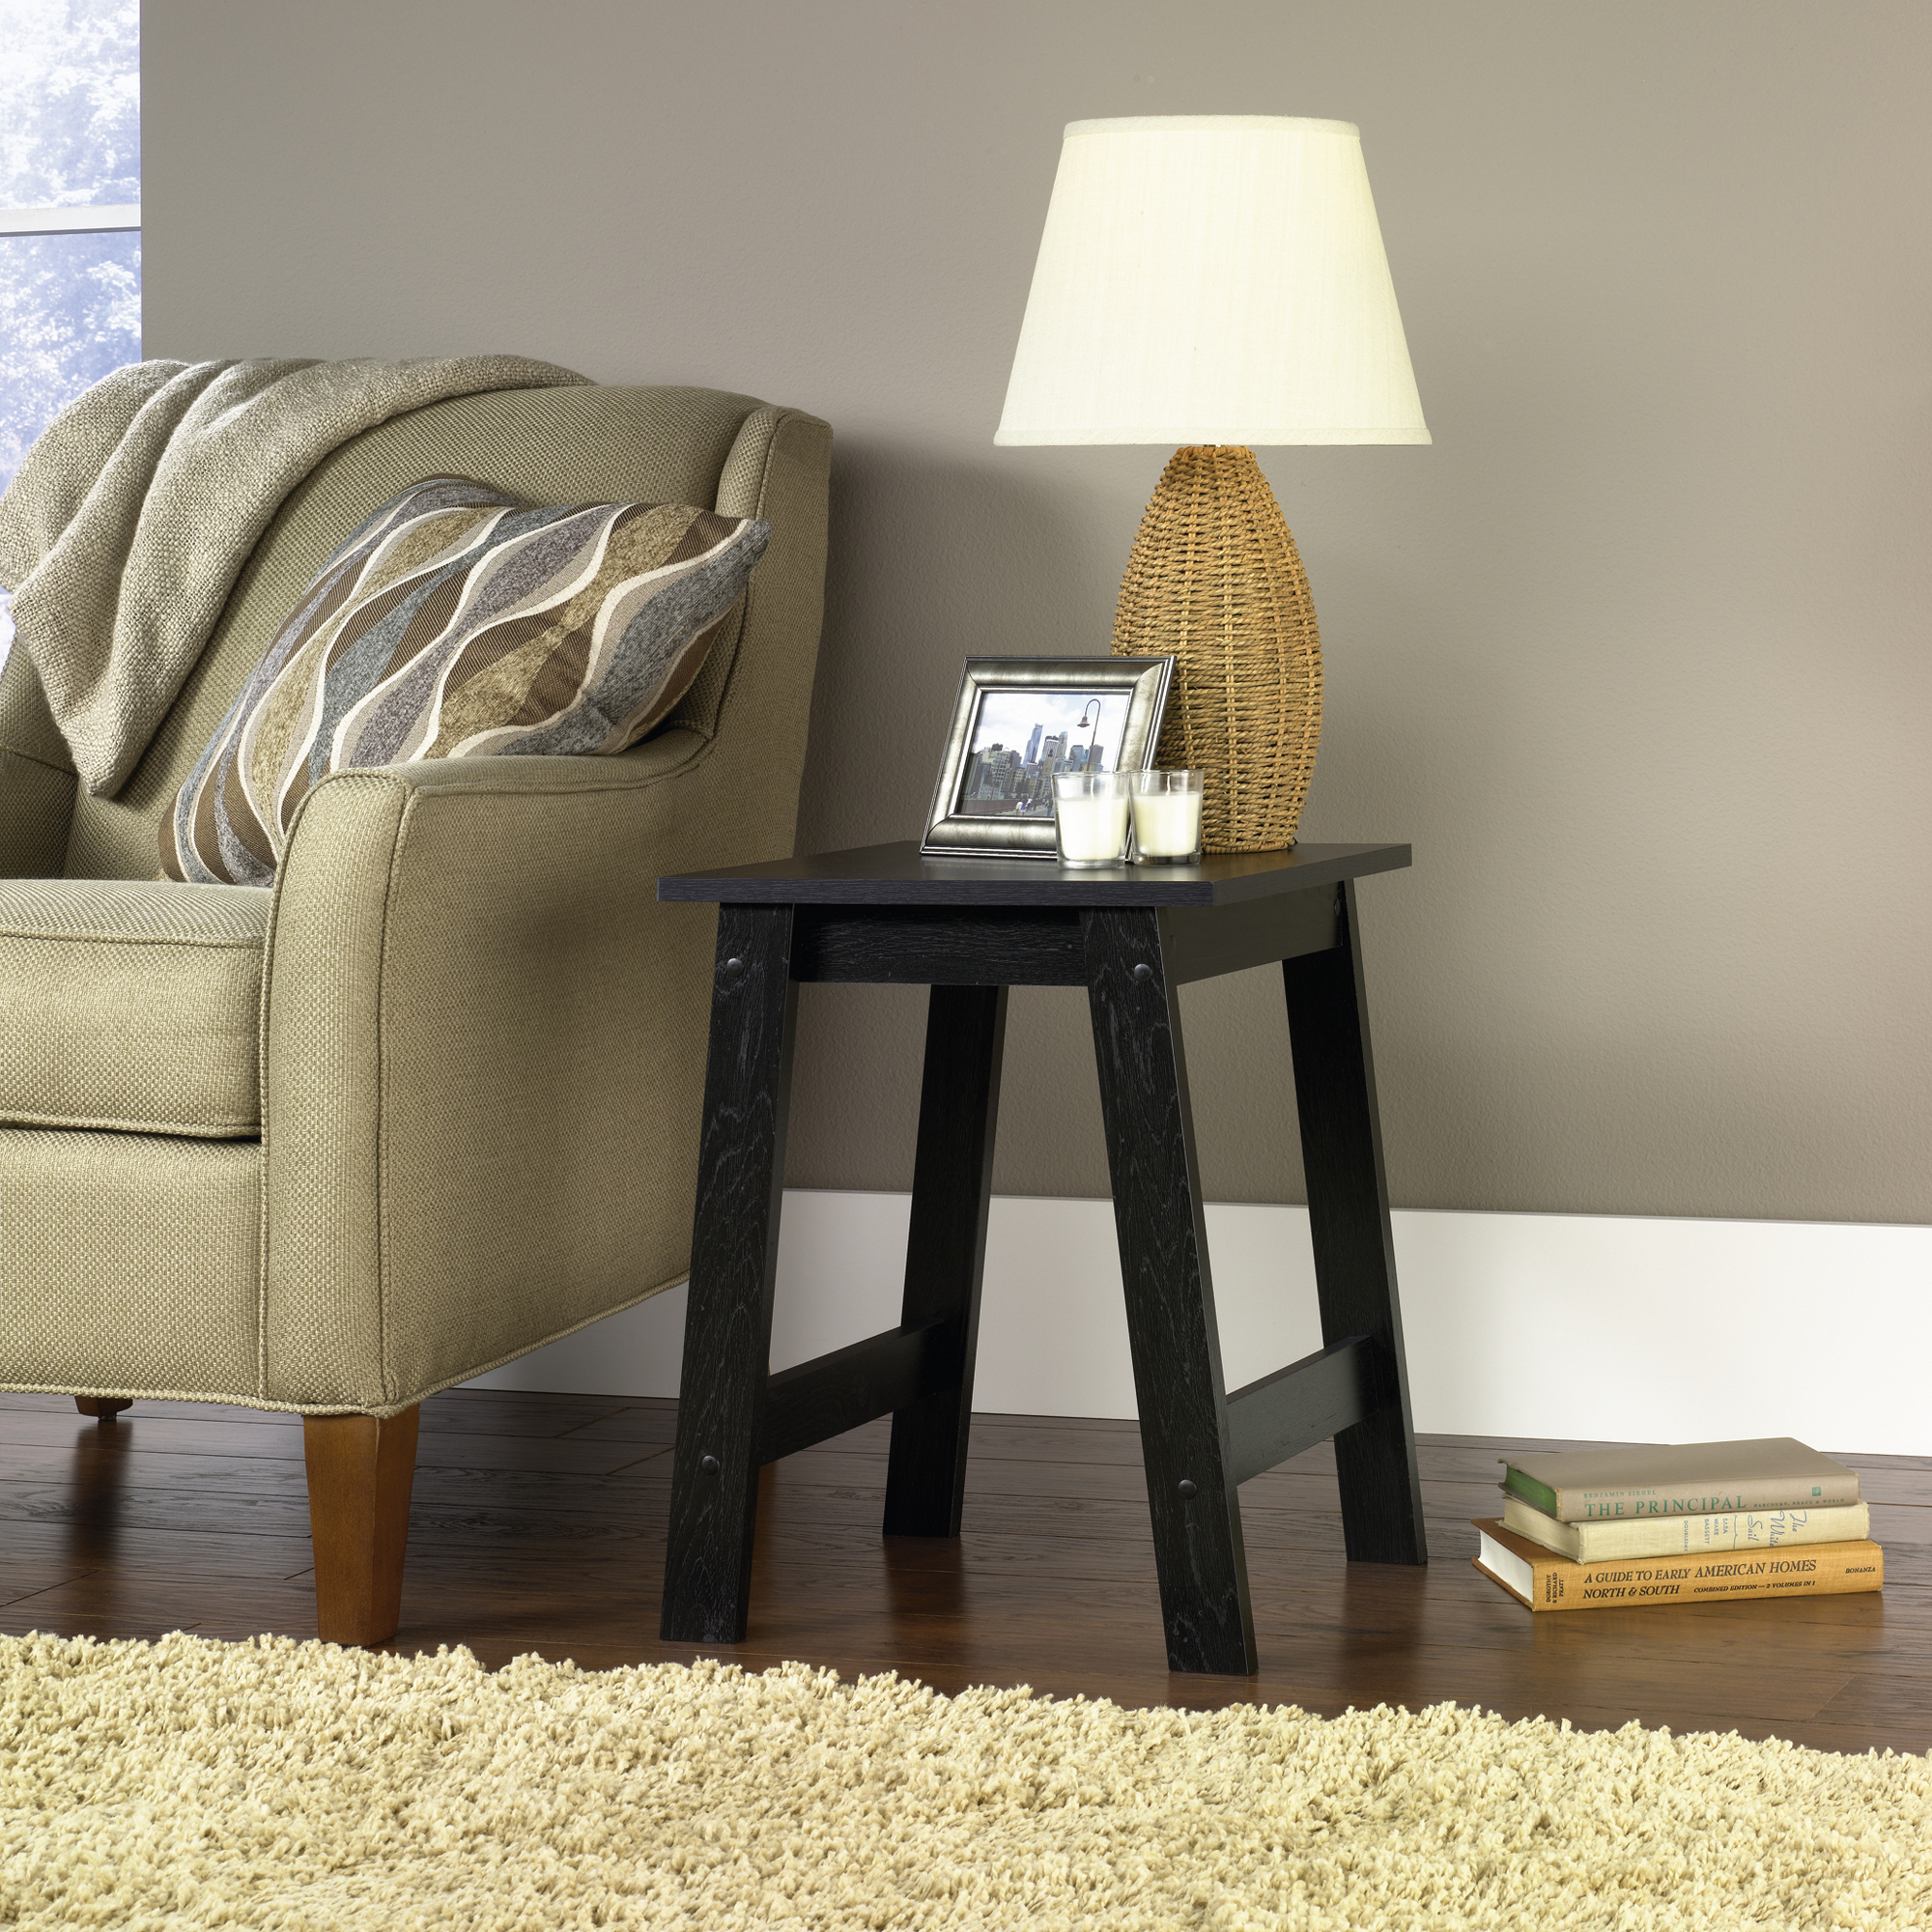 mainstays end table black oak finish departments high side tables affordable contemporary furniture shabby chic coffee and ethan allen country craftsman homesense bedding sets for